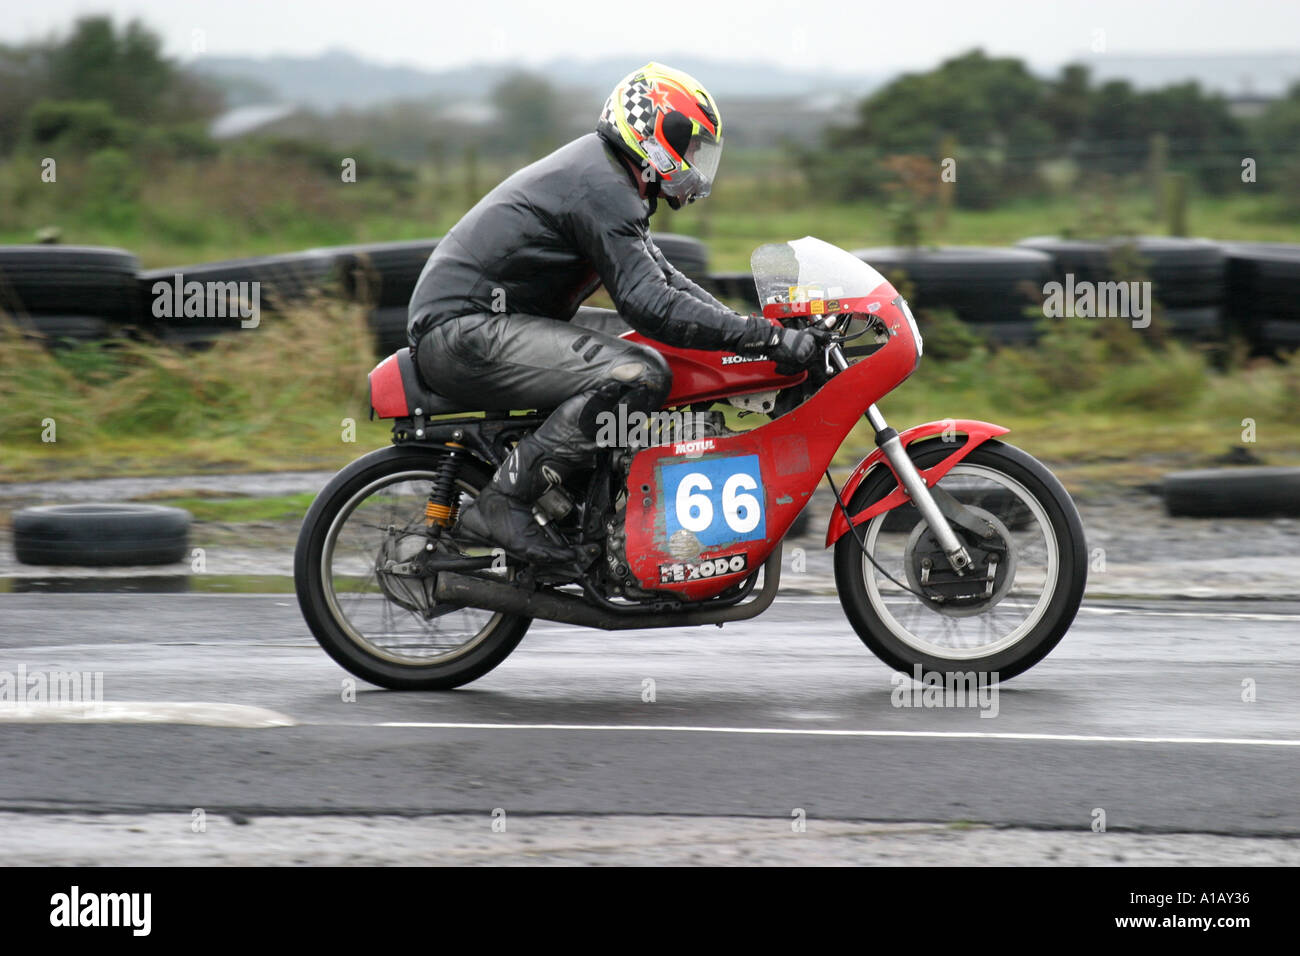 Classic Racer Stock Photos Images Alamy Circuit Map For Bromyard Speed Festival Bike Rider At A Wet Aghadowey Motorsport County Antrim Northern Ireland